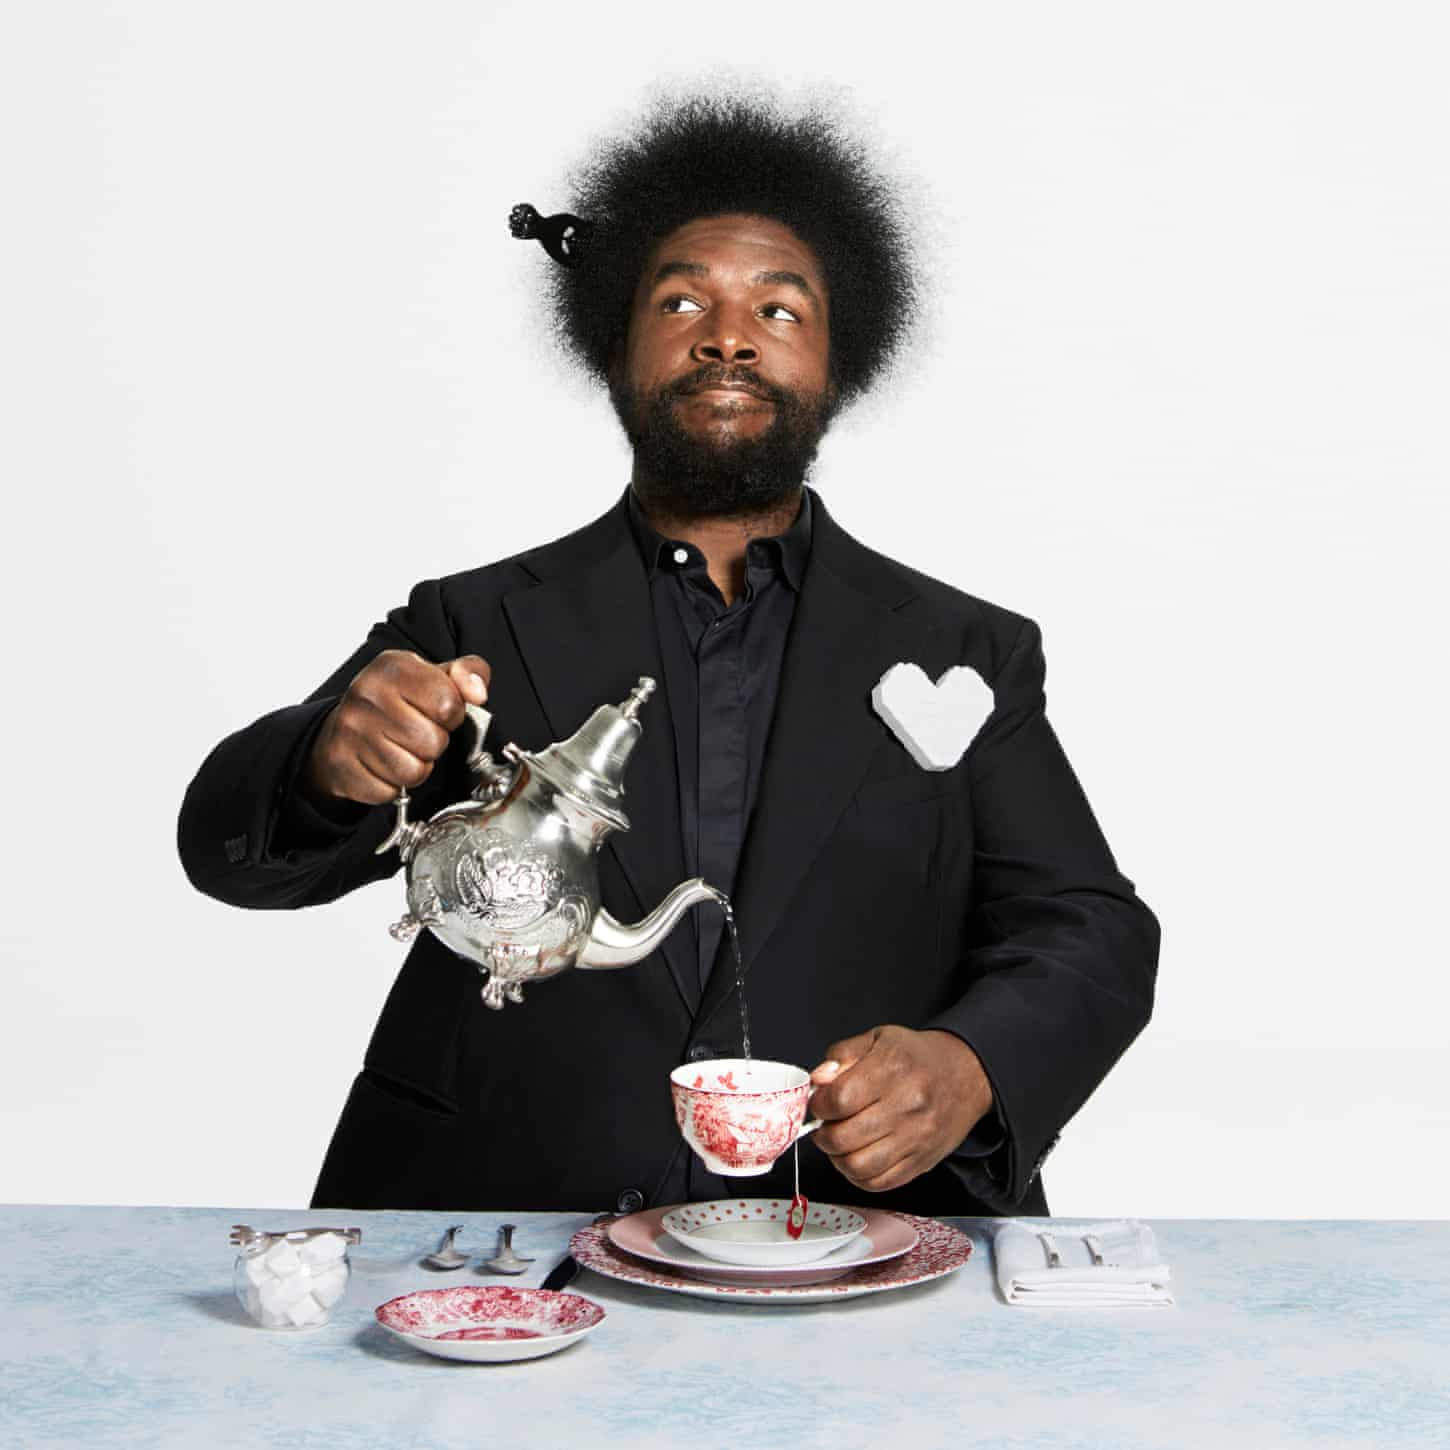 Questlove: bagels with Amy Winehouse, fish and chips with the Roots